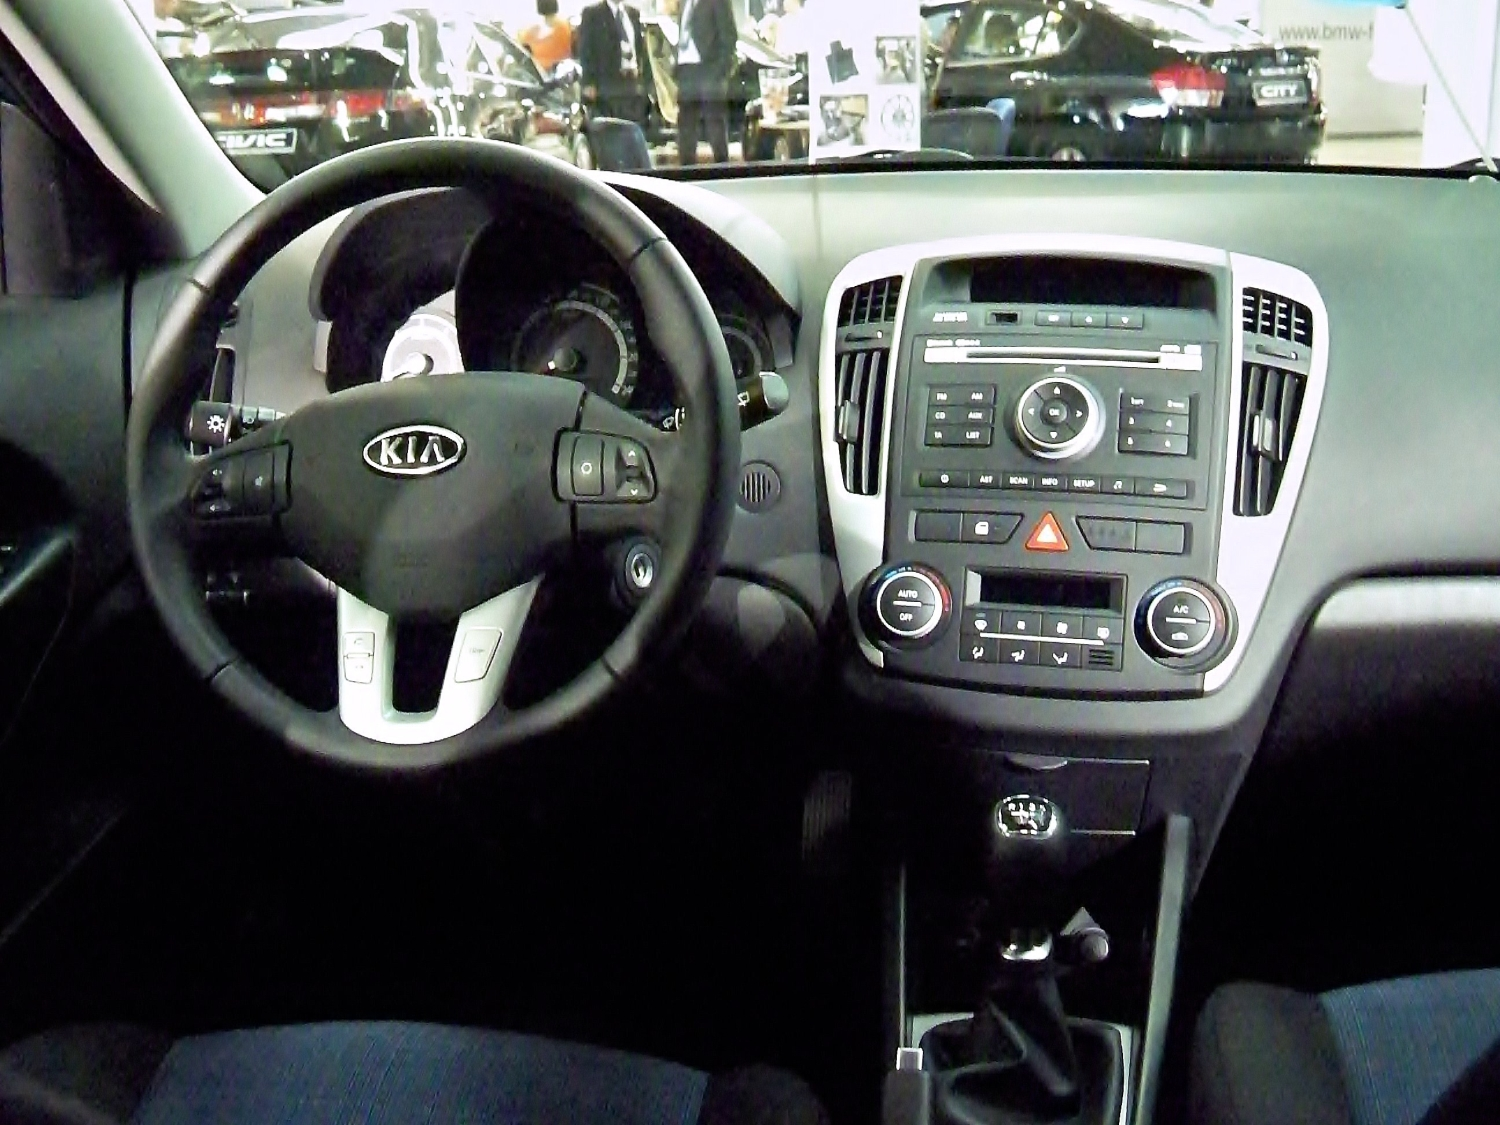 Datei:Kia cee\'d SW Facelift interior - GMS 2009.jpg – Wikipedia